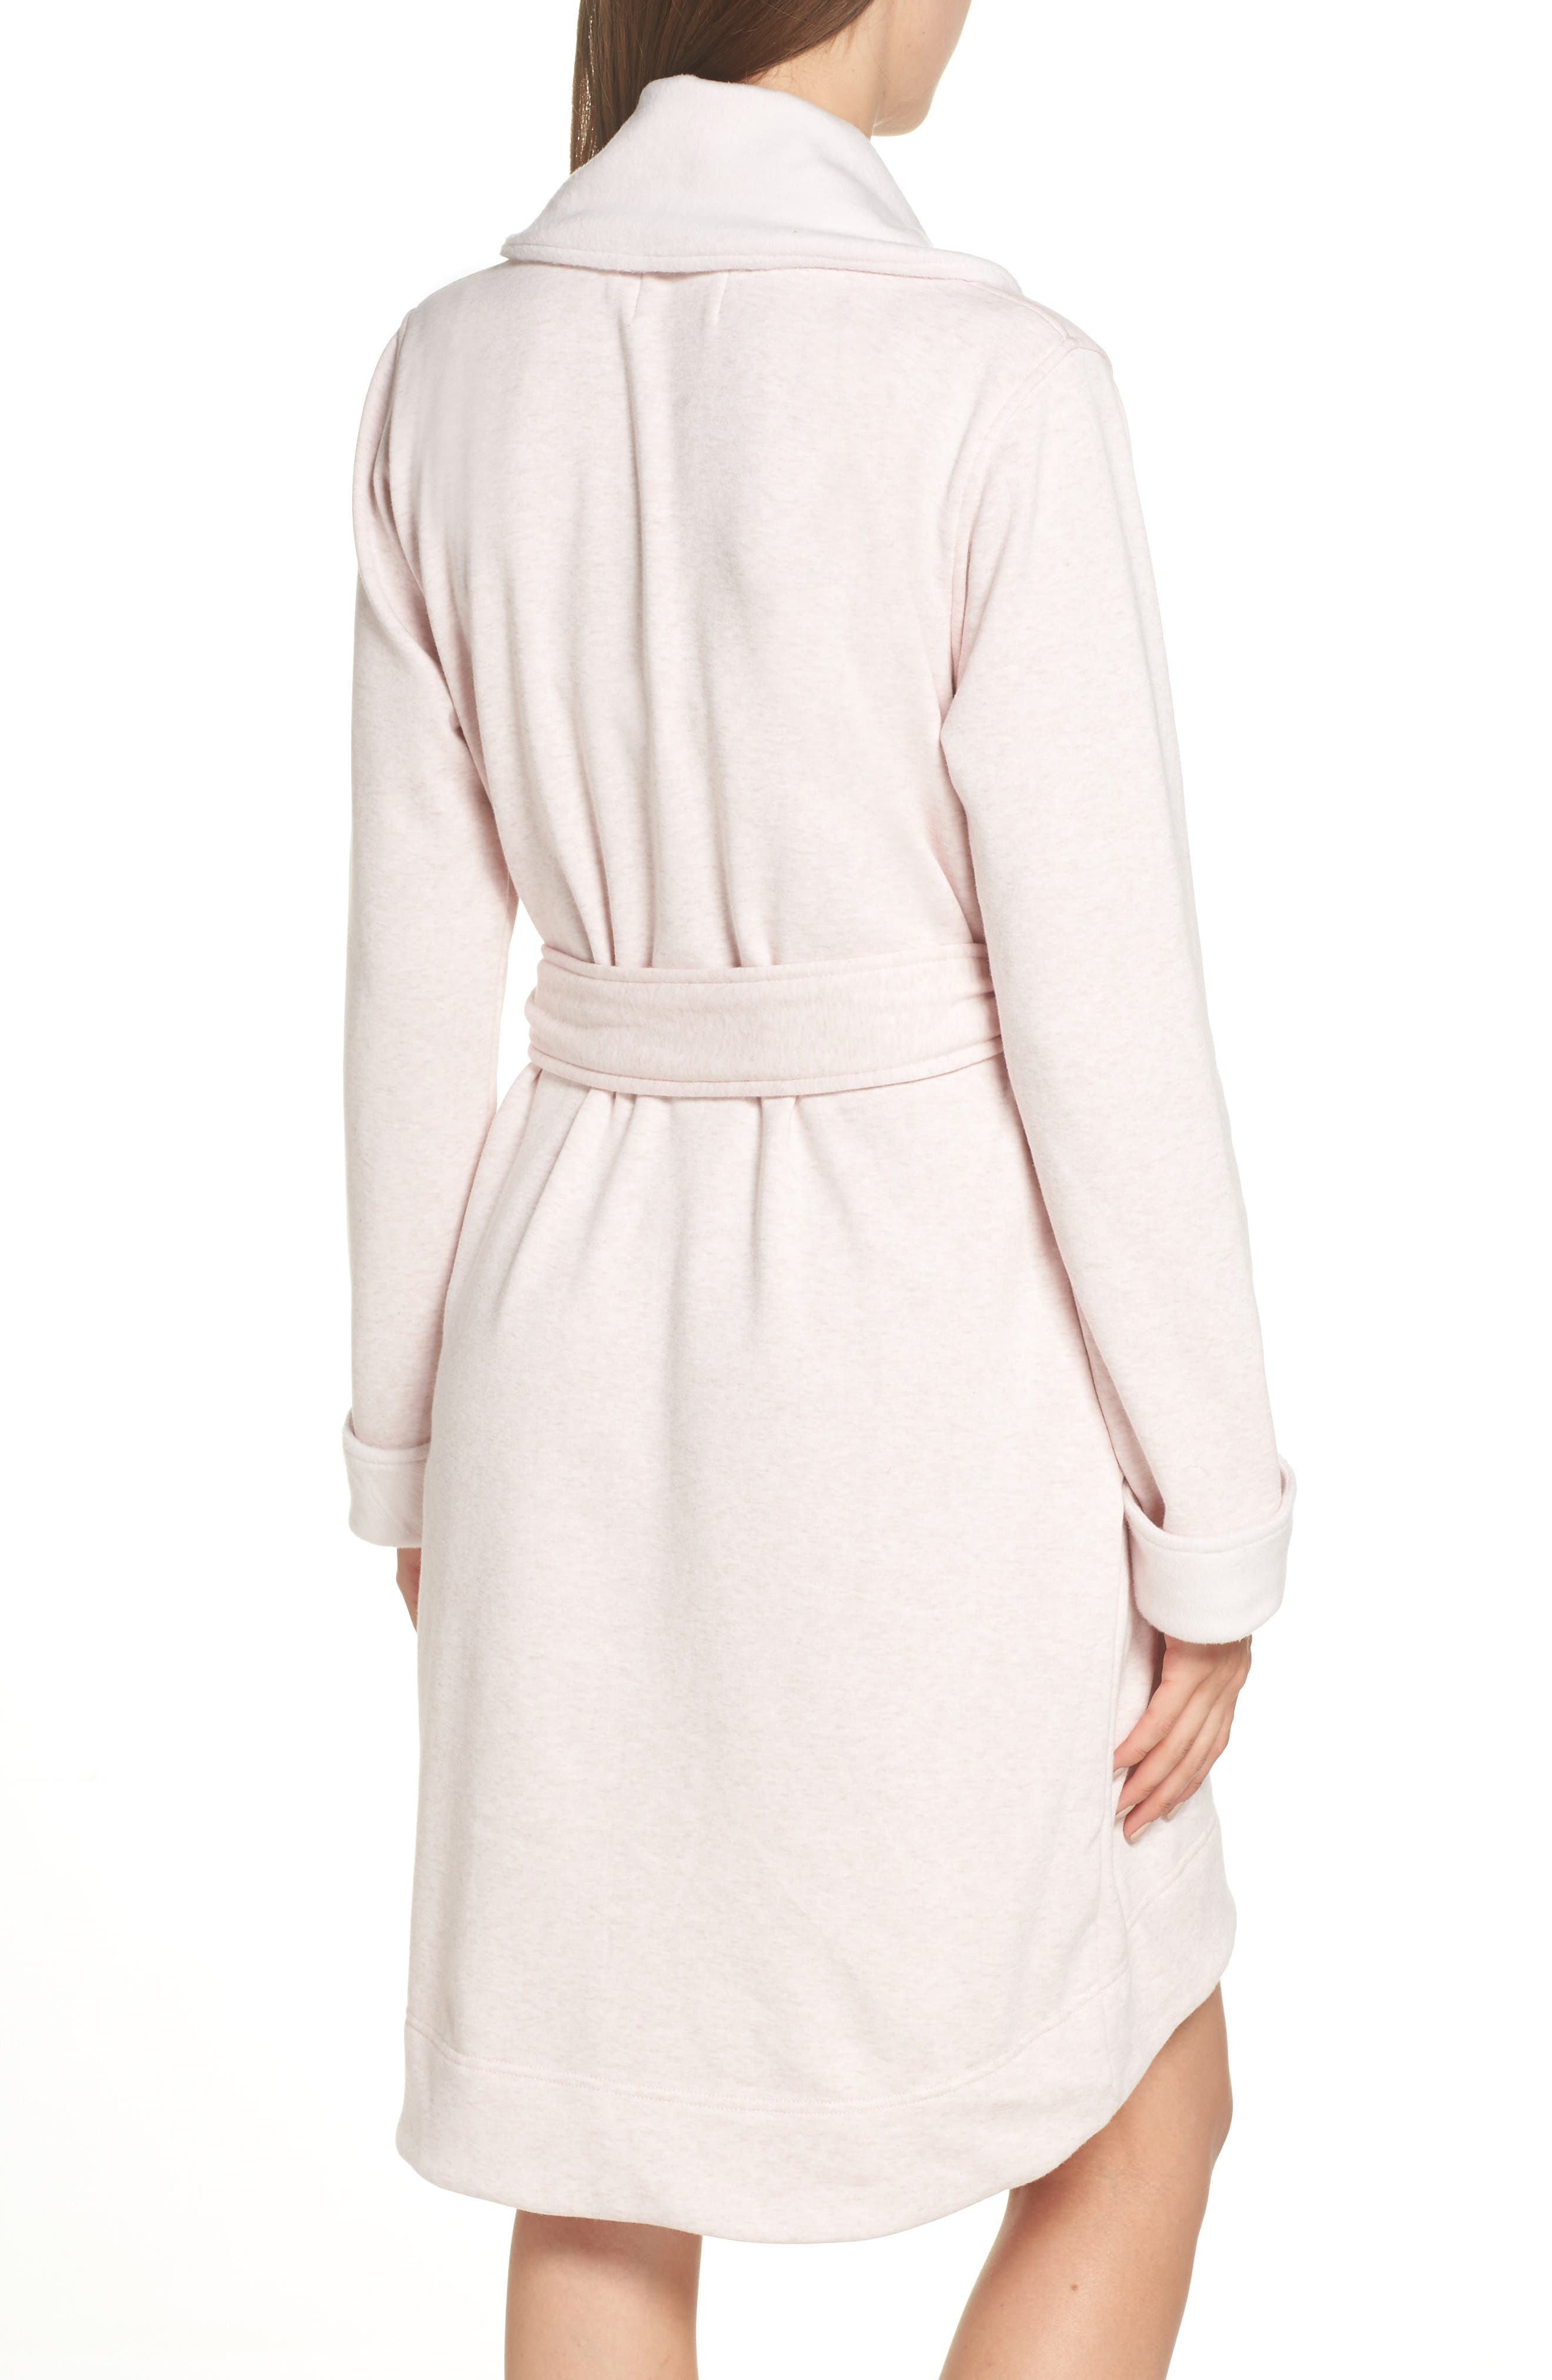 Blanche II Short Robe,                             Alternate thumbnail 14, color,